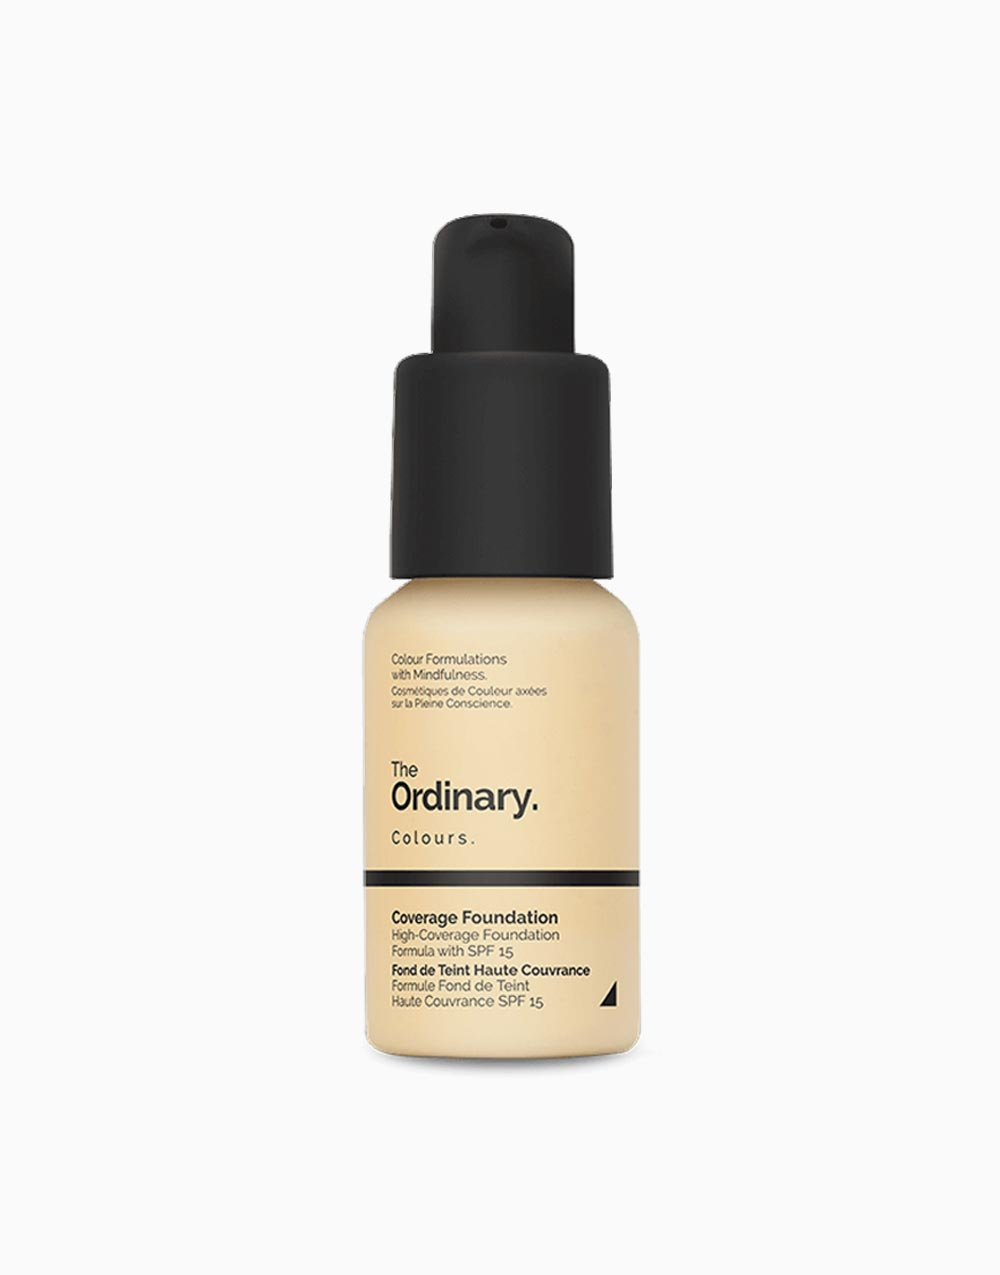 Coverage Foundation by The Ordinary | 1.2Y